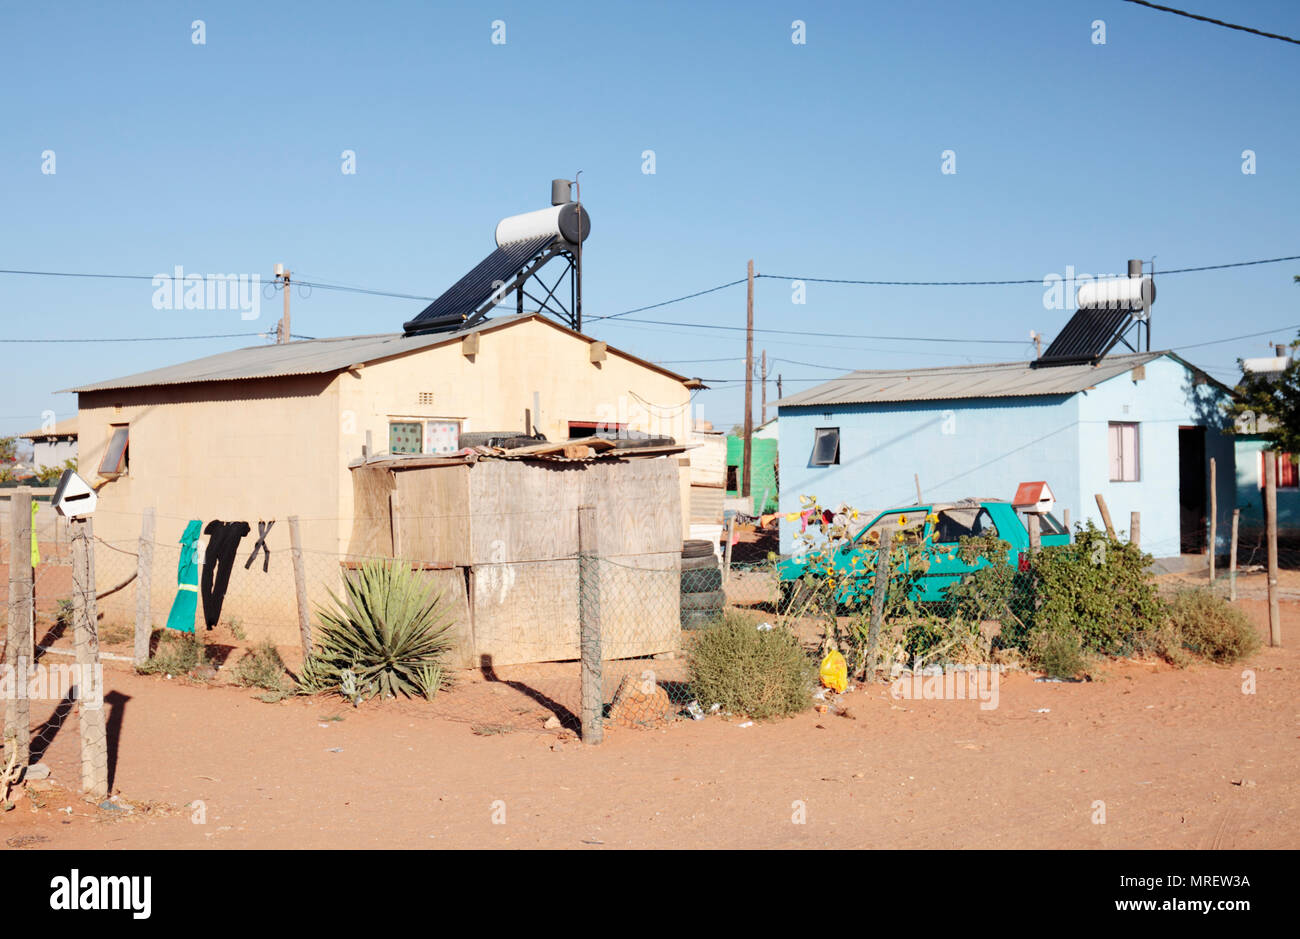 House on an informal settlement (township) with a solar water heater, Vredendal, Western Cape, South Africa. - Stock Image